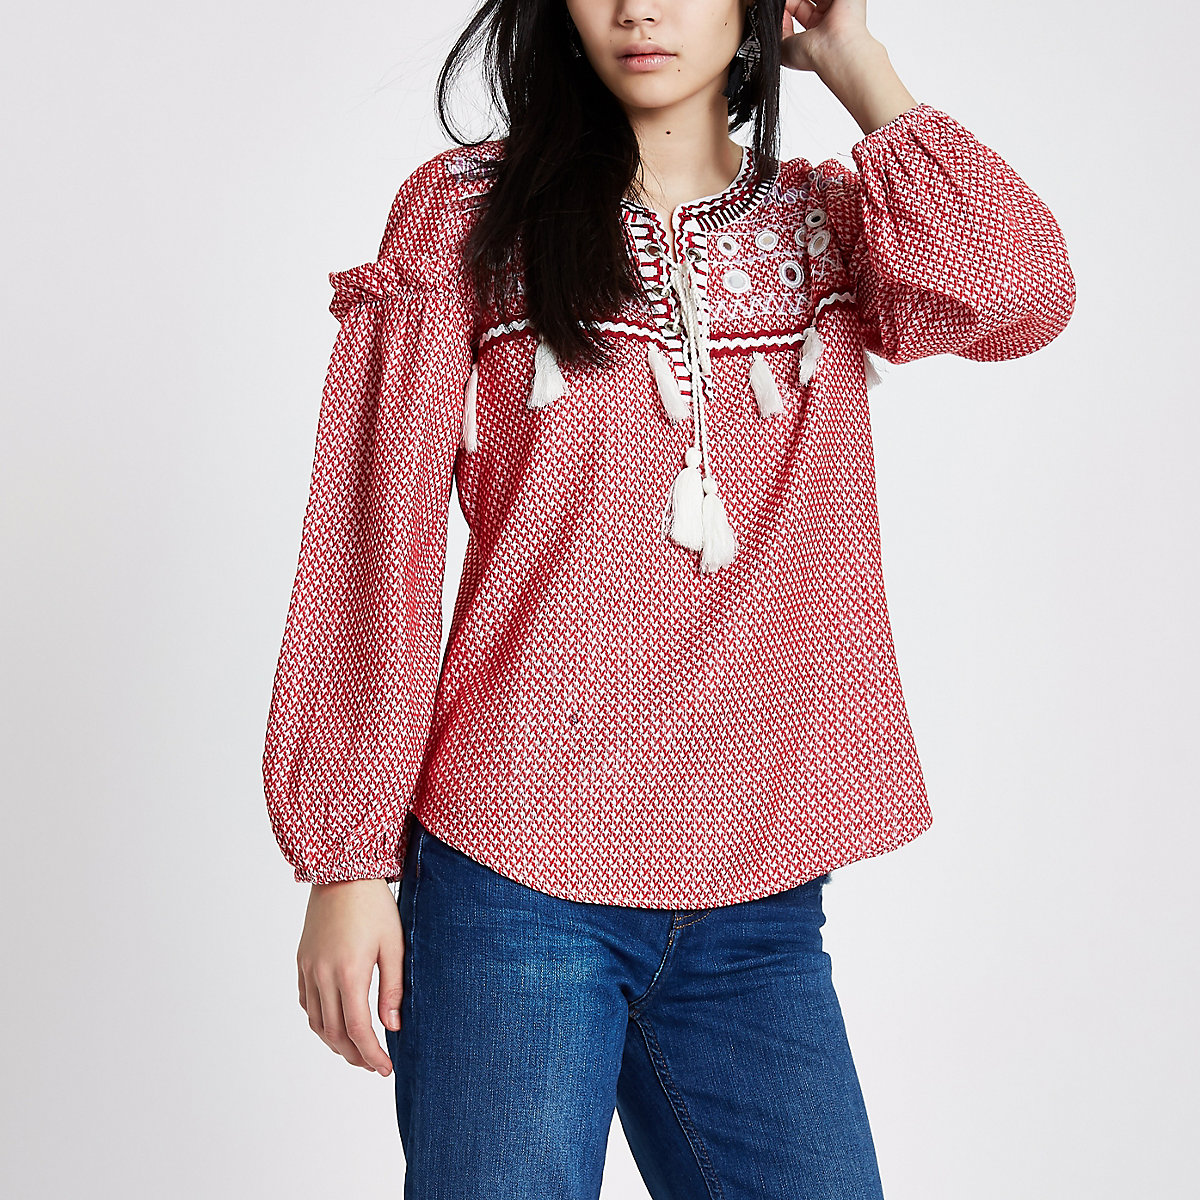 Red Lace Up Front Print Smock Top Blouses Tops Women